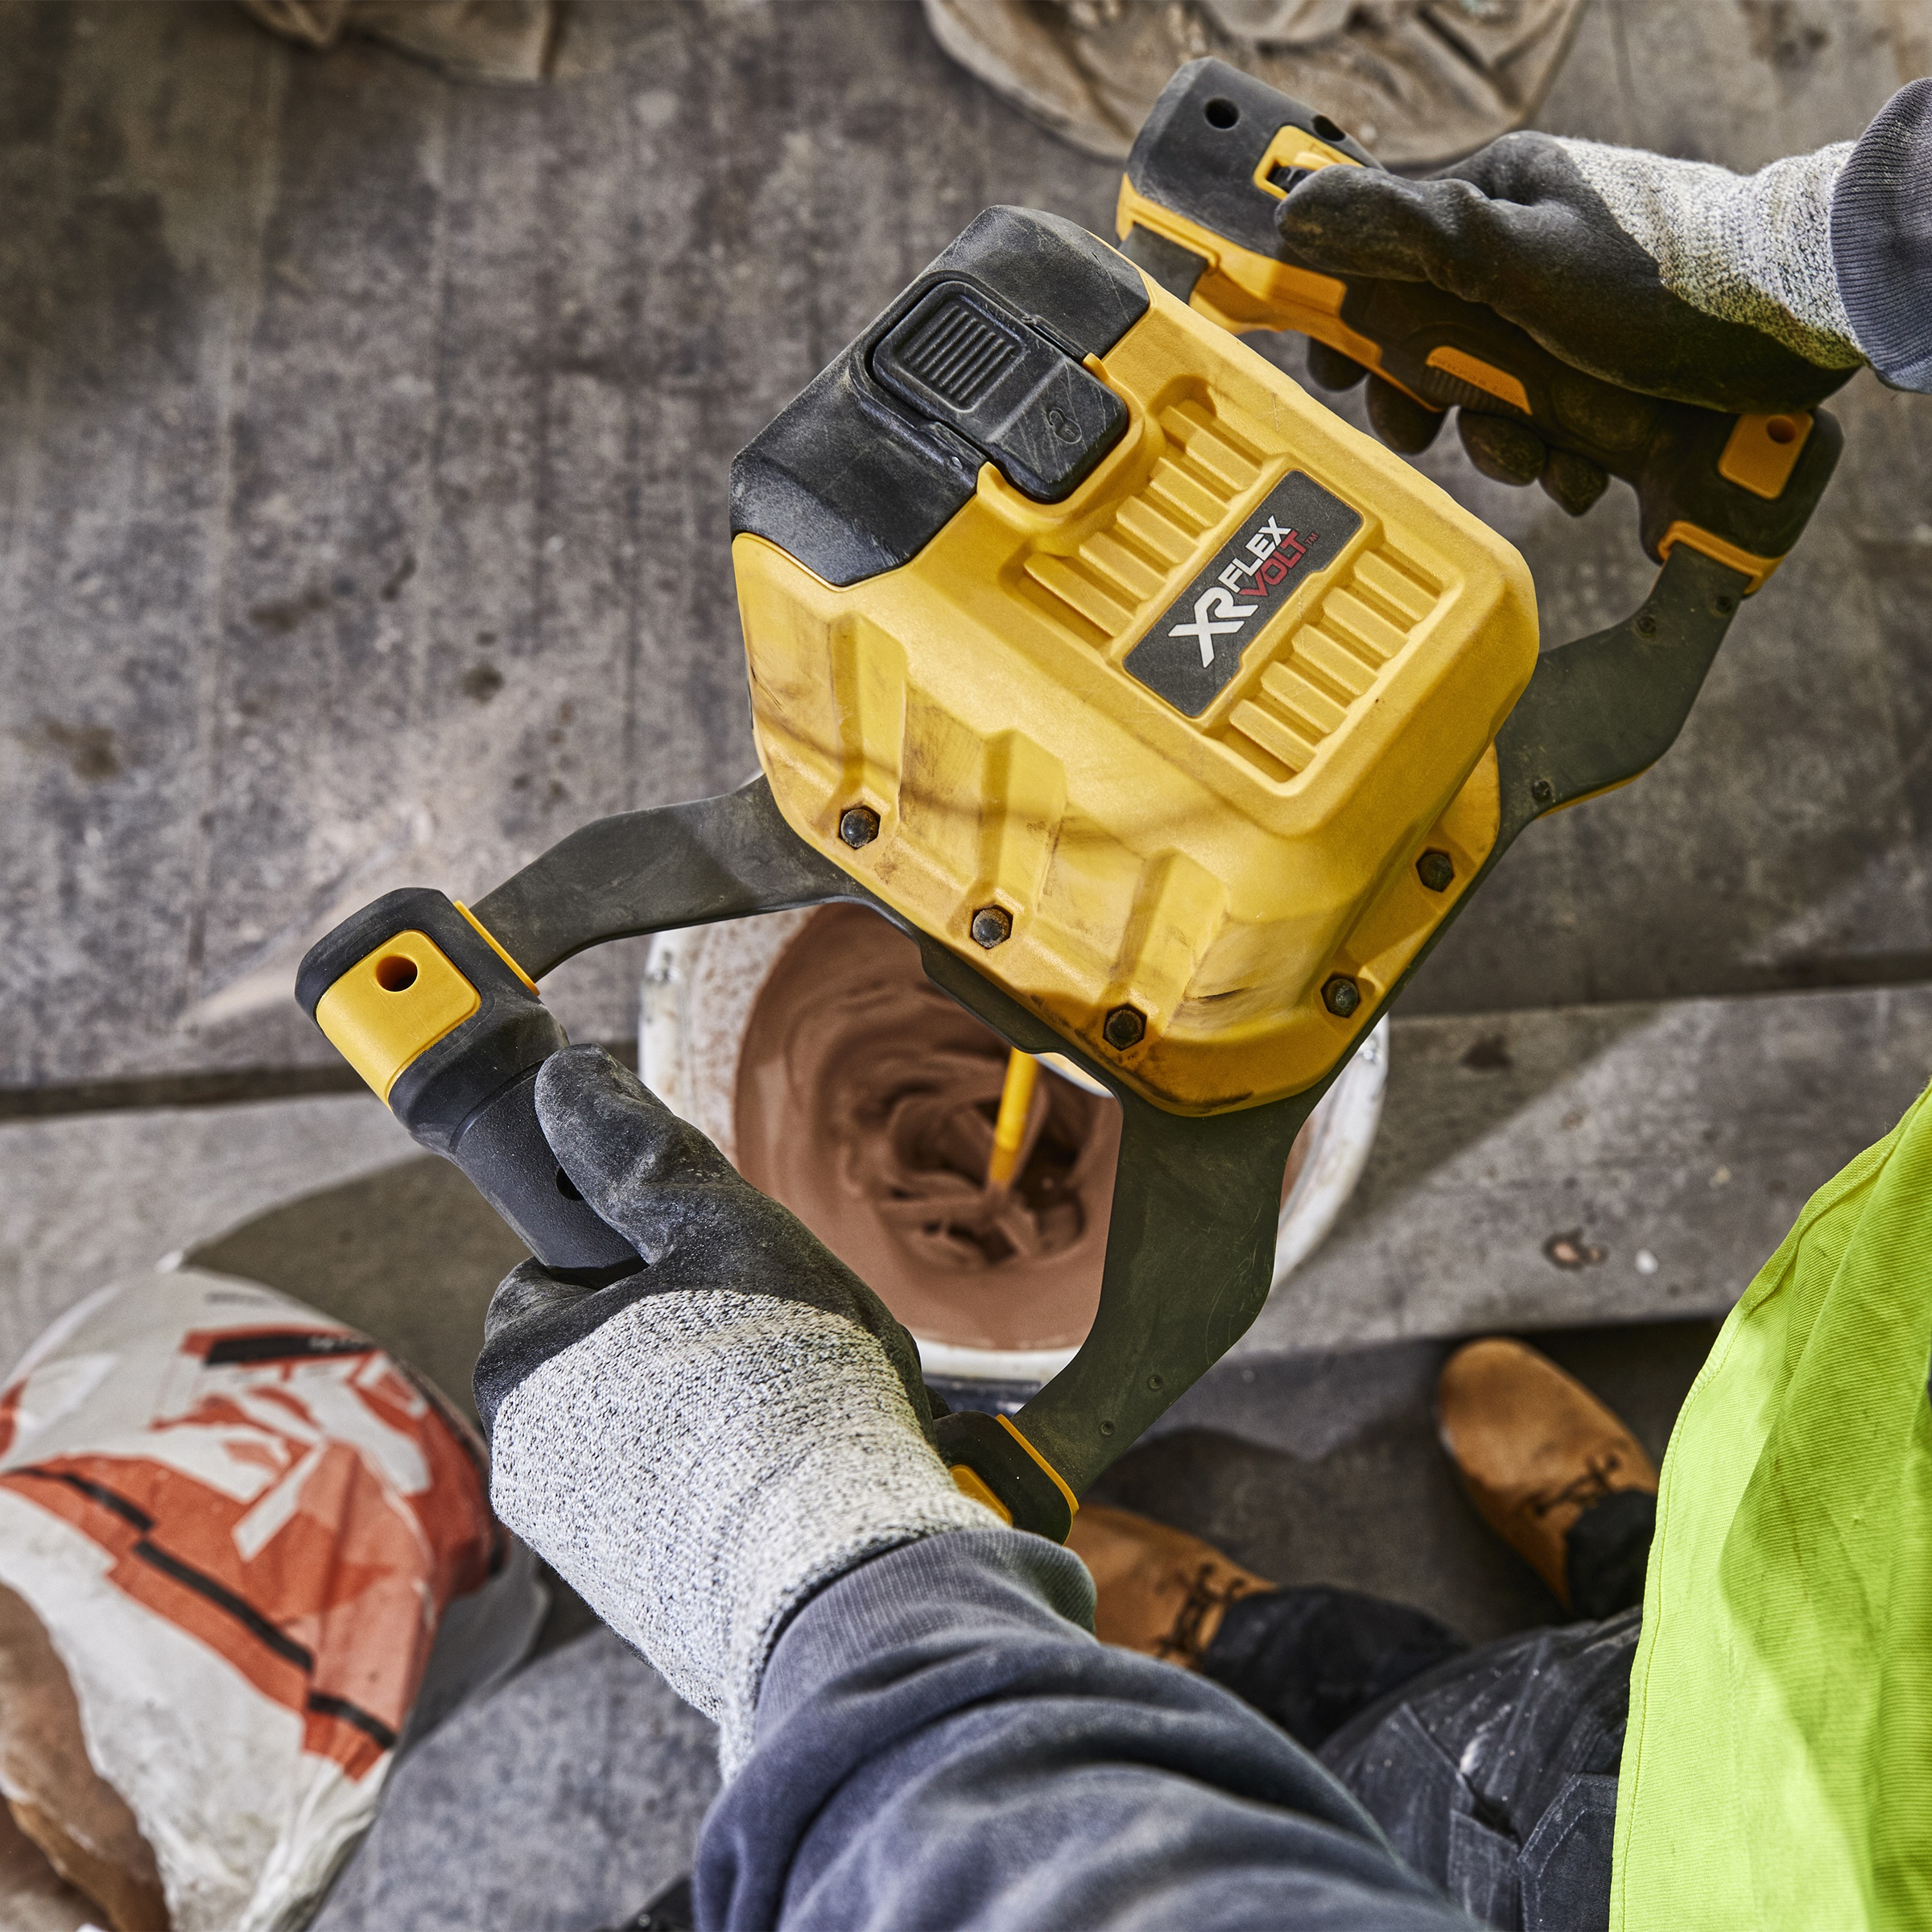 DeWALT DCD240X2 in use